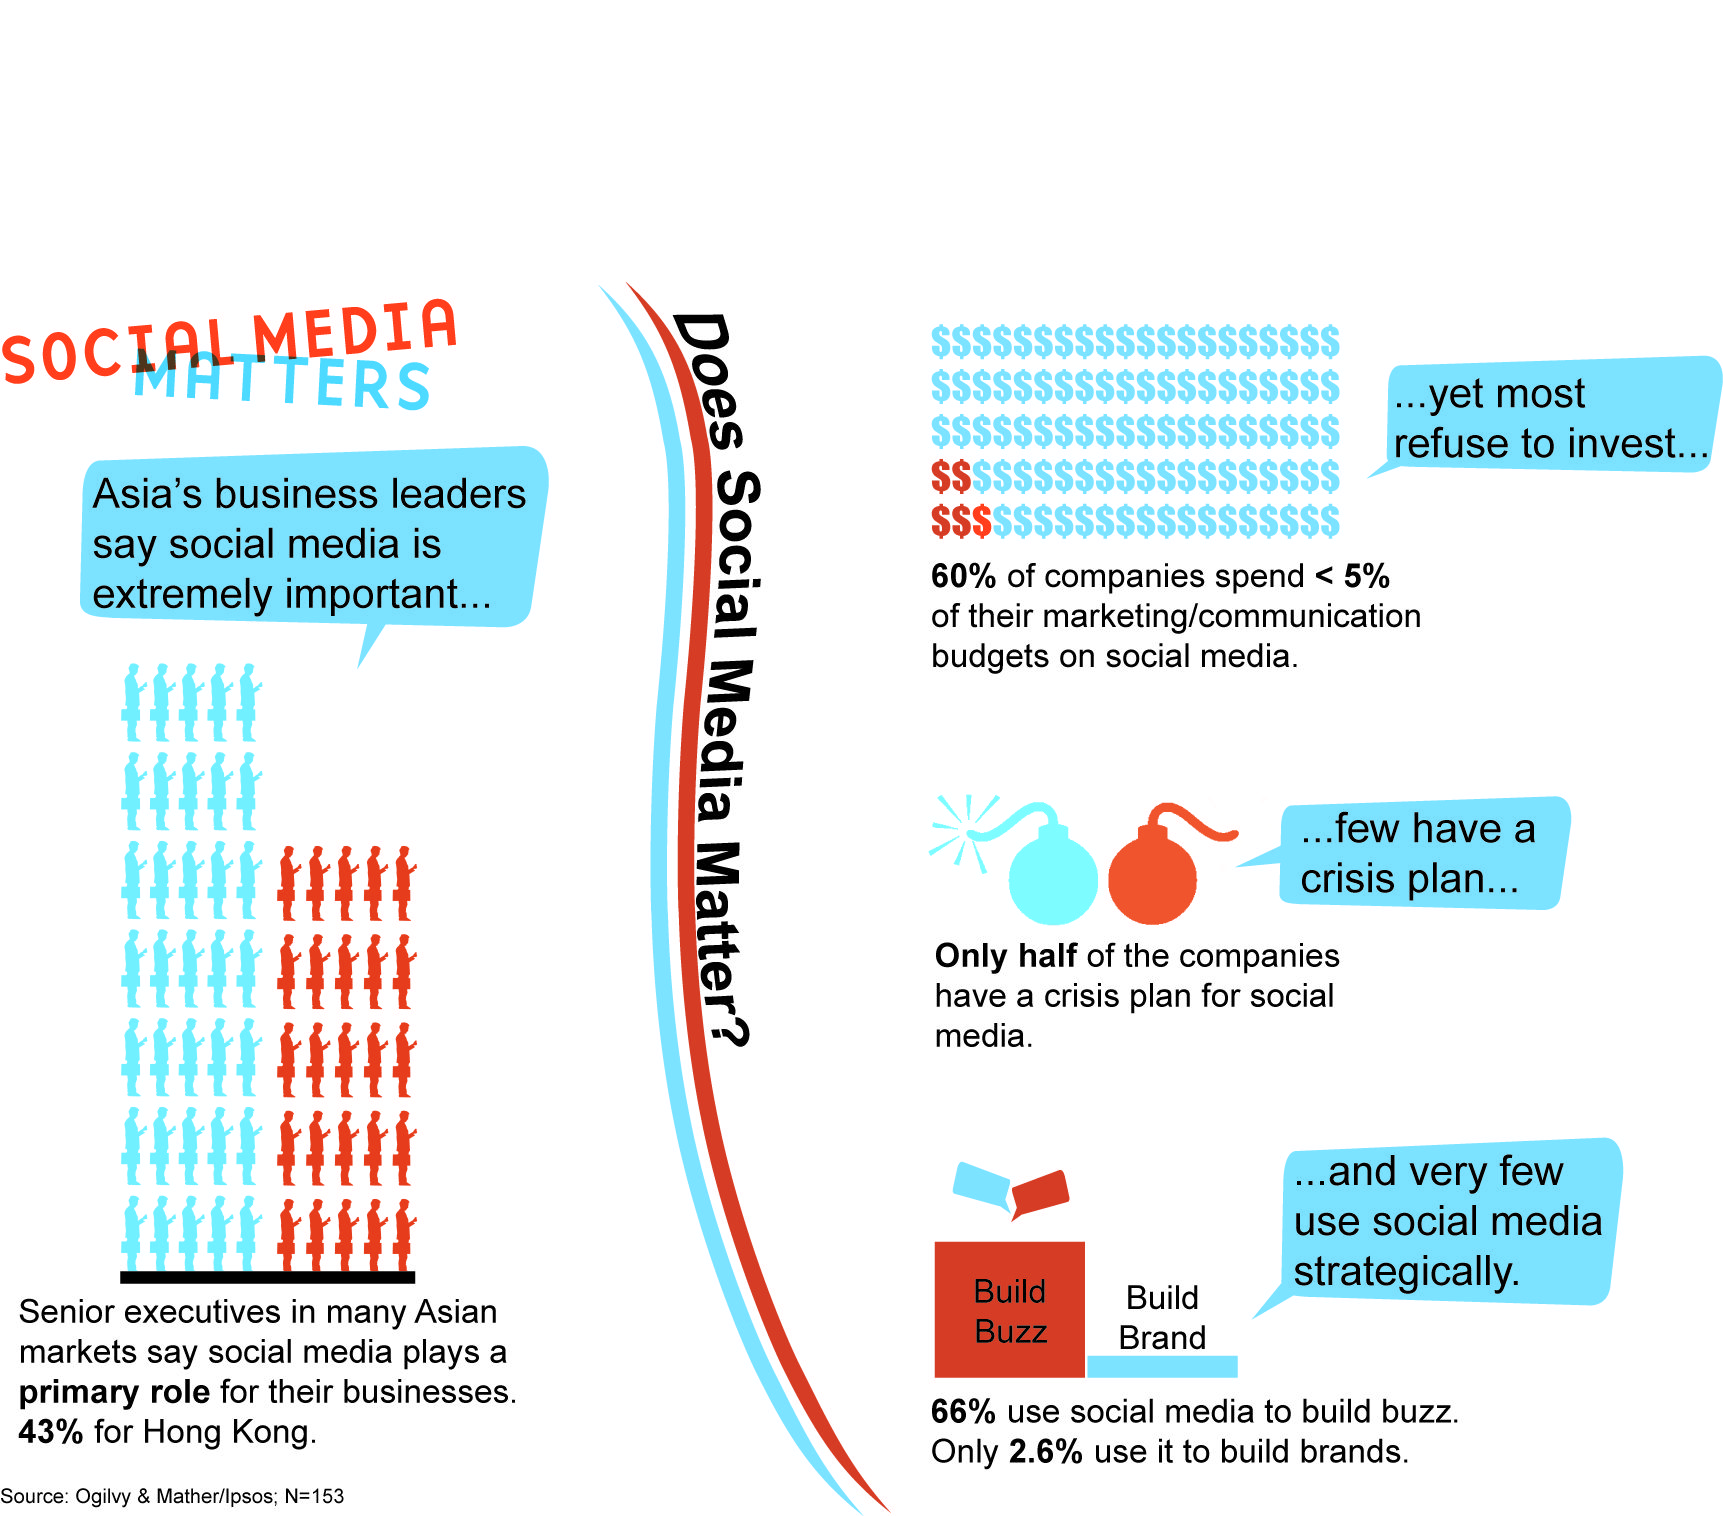 Social Media Matters Infographic... How Social Media is Used in Asia. Event Details:     Date: September 7th, 2012.  Location: Four Seasons Hotel, Hong Kong. Here's the link for more details about the event.  http://www.allthatmatters.asia/social/2012/